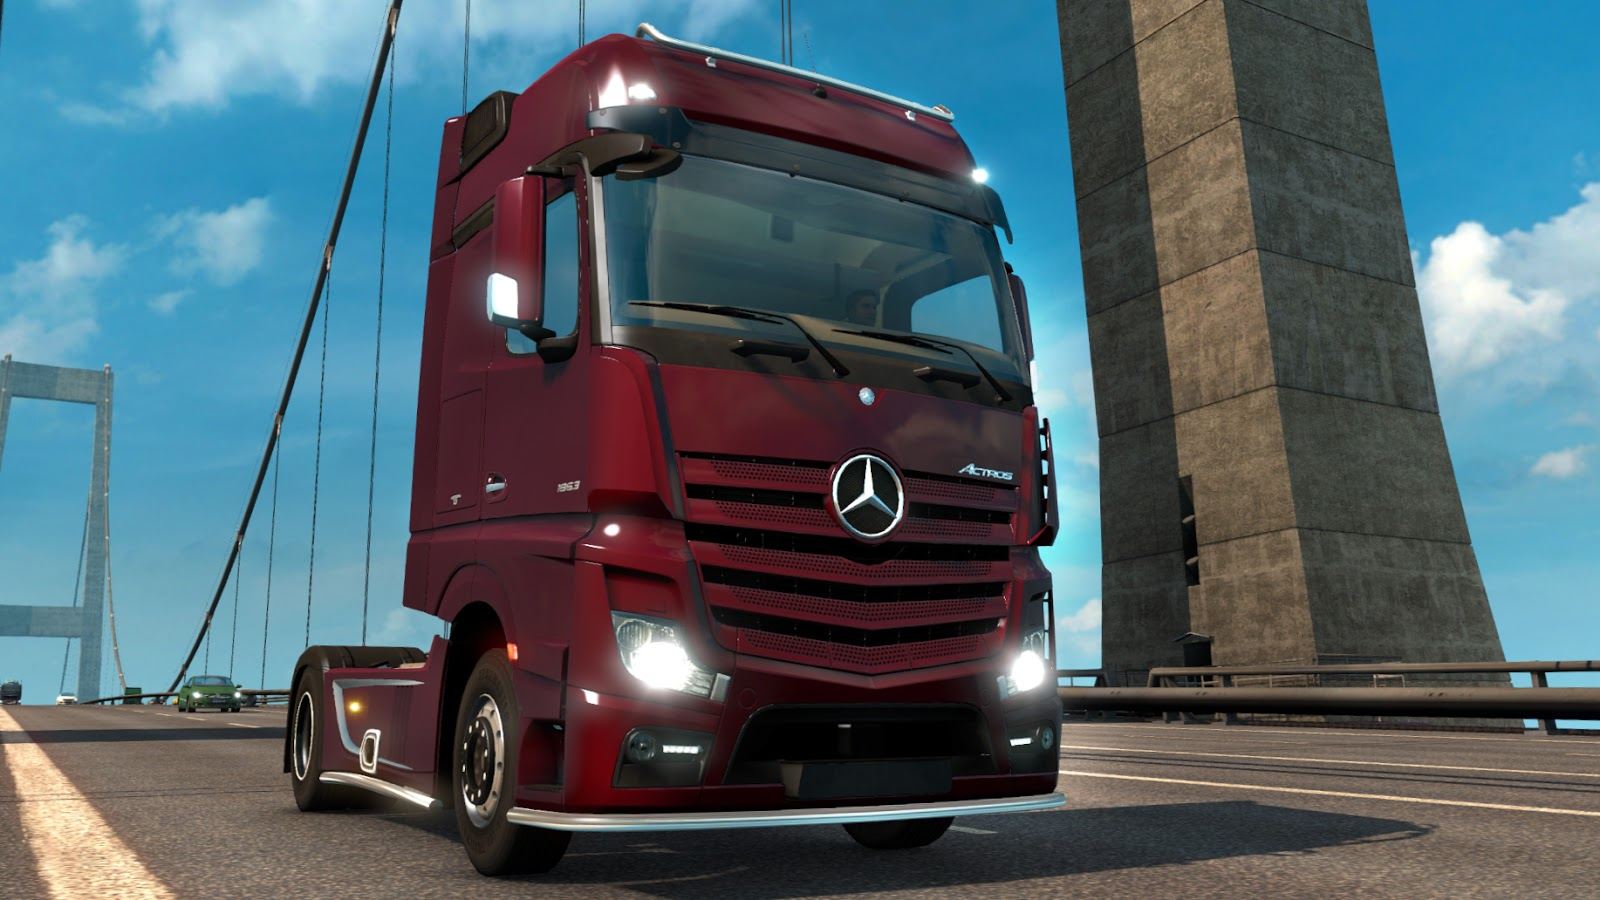 Old Car Wallpaper Download Euro Truck Simulator 2 Patch 1 18 Ets2 Mods